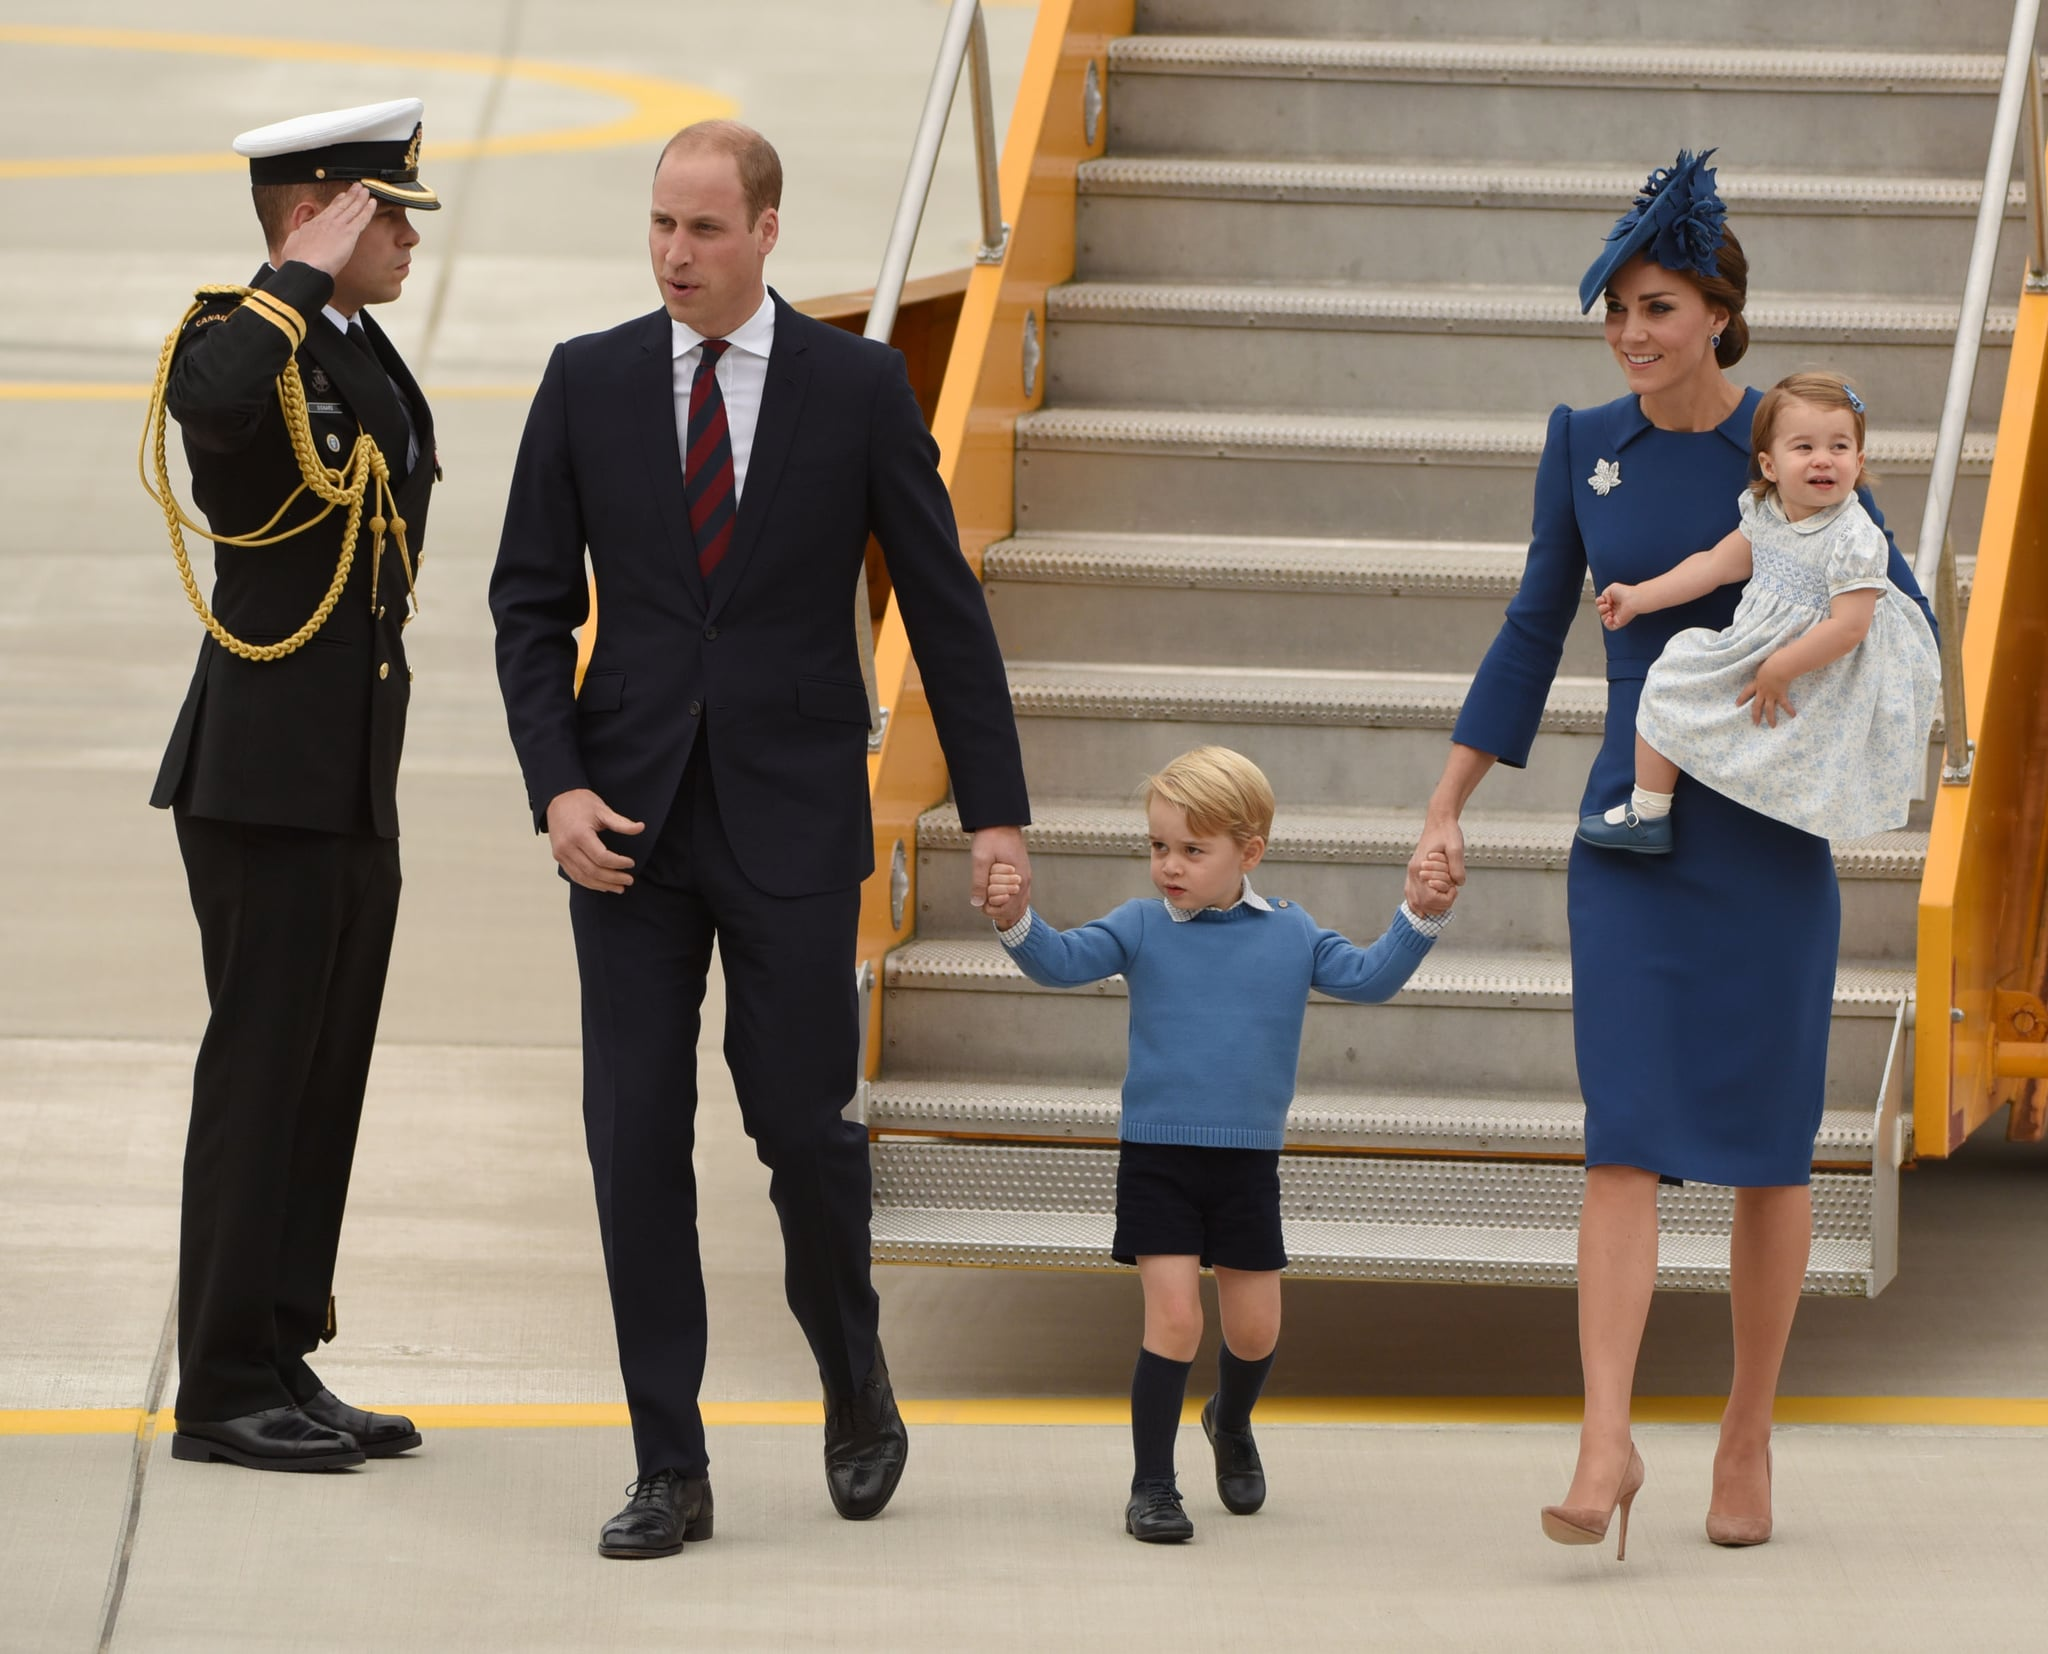 (L-R) Prince William, Duke of Cambridge, Prince George of Cambridge, Catherine, Duchess of Cambridge and Princess Charlotte of Cambridge arrive at 443 Maritime Helicopter Squadron on  September 24, 2016 in, Victoria, British Columbia.The prince and his wife first visited Canada five years ago. This time they will take in the natural beauty of Canada's Pacific coast, heading as far north as the rugged Yukon territory, and will also meet with indigenous people. / AFP / Don MacKinnon        (Photo credit should read DON MACKINNON/AFP/Getty Images)